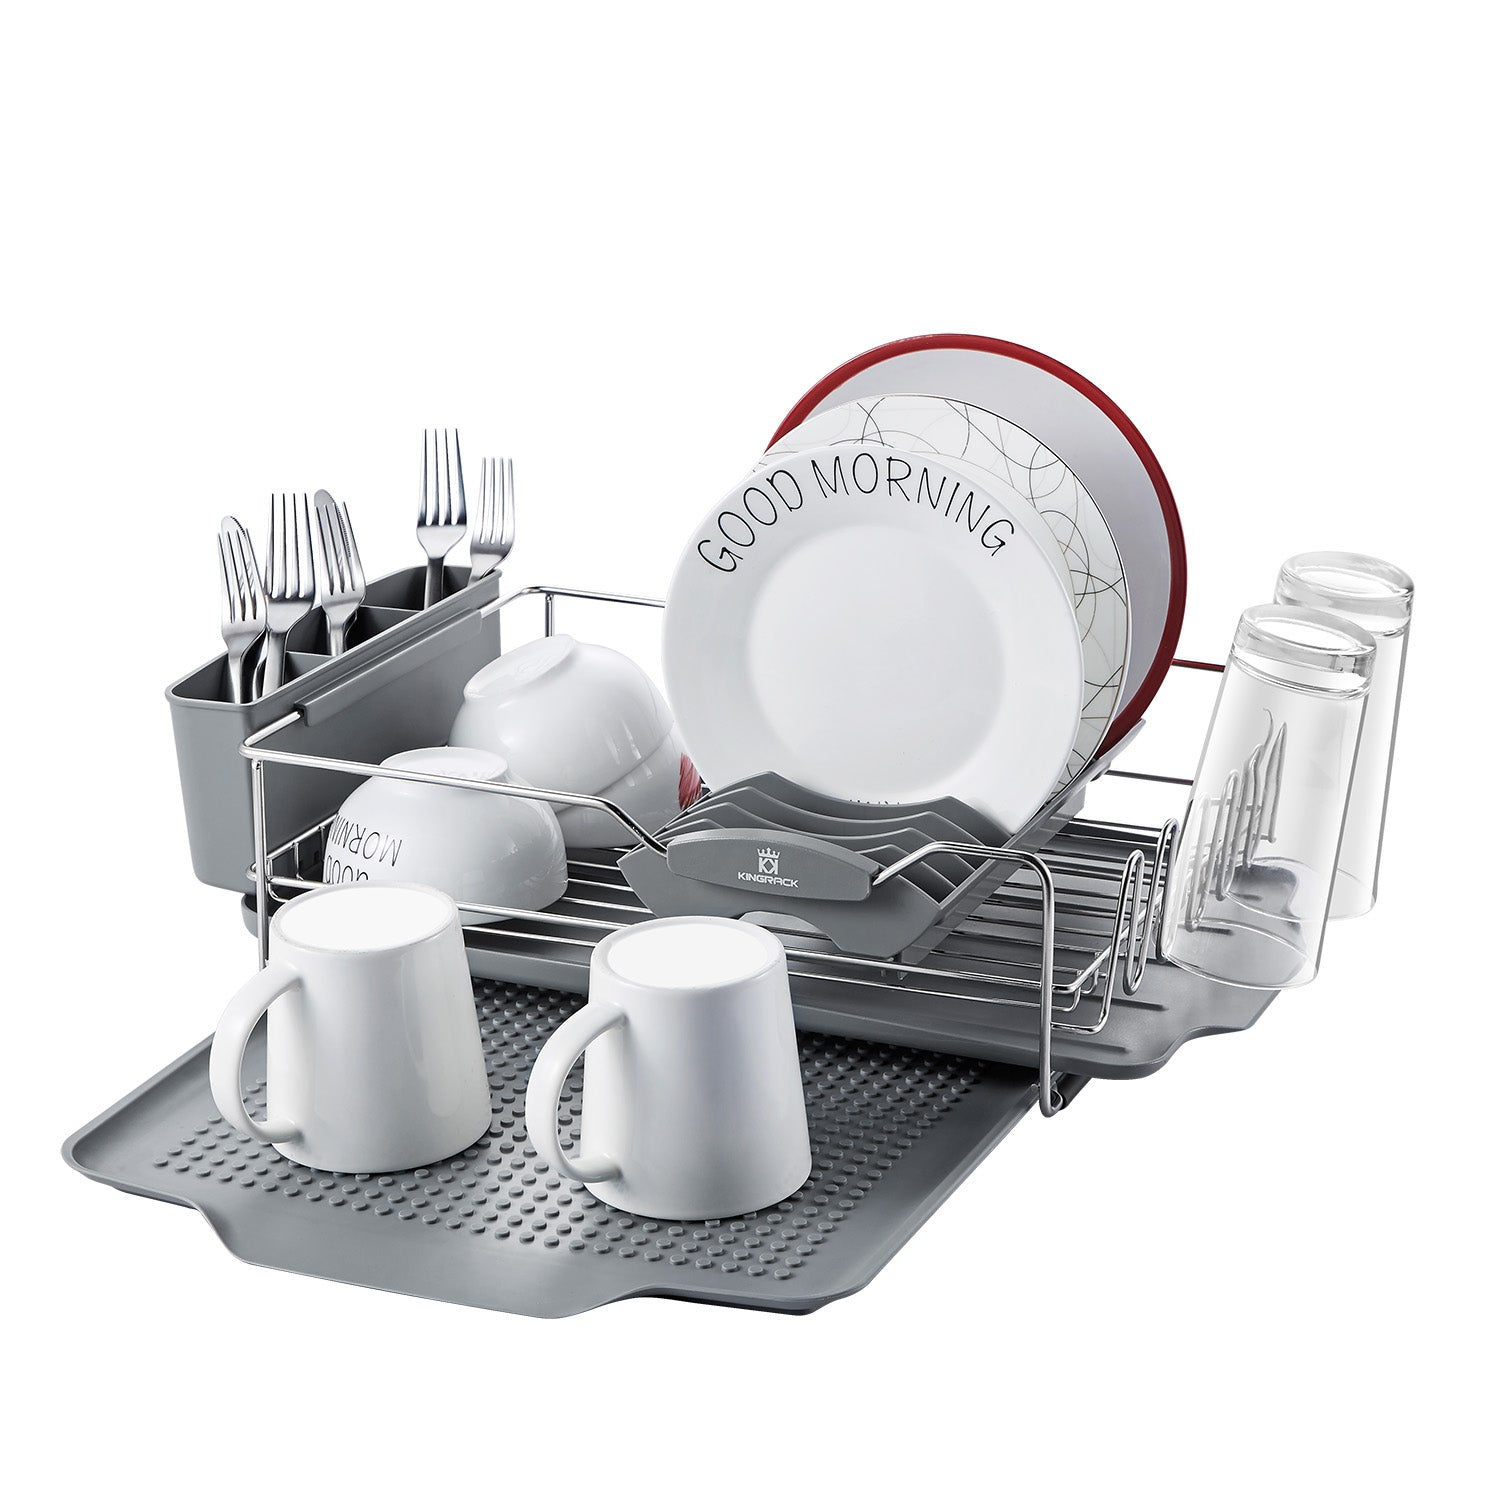 Stainless Steel Dish Drying Rack with Expandable Over Sink Dish Rack  wk112054